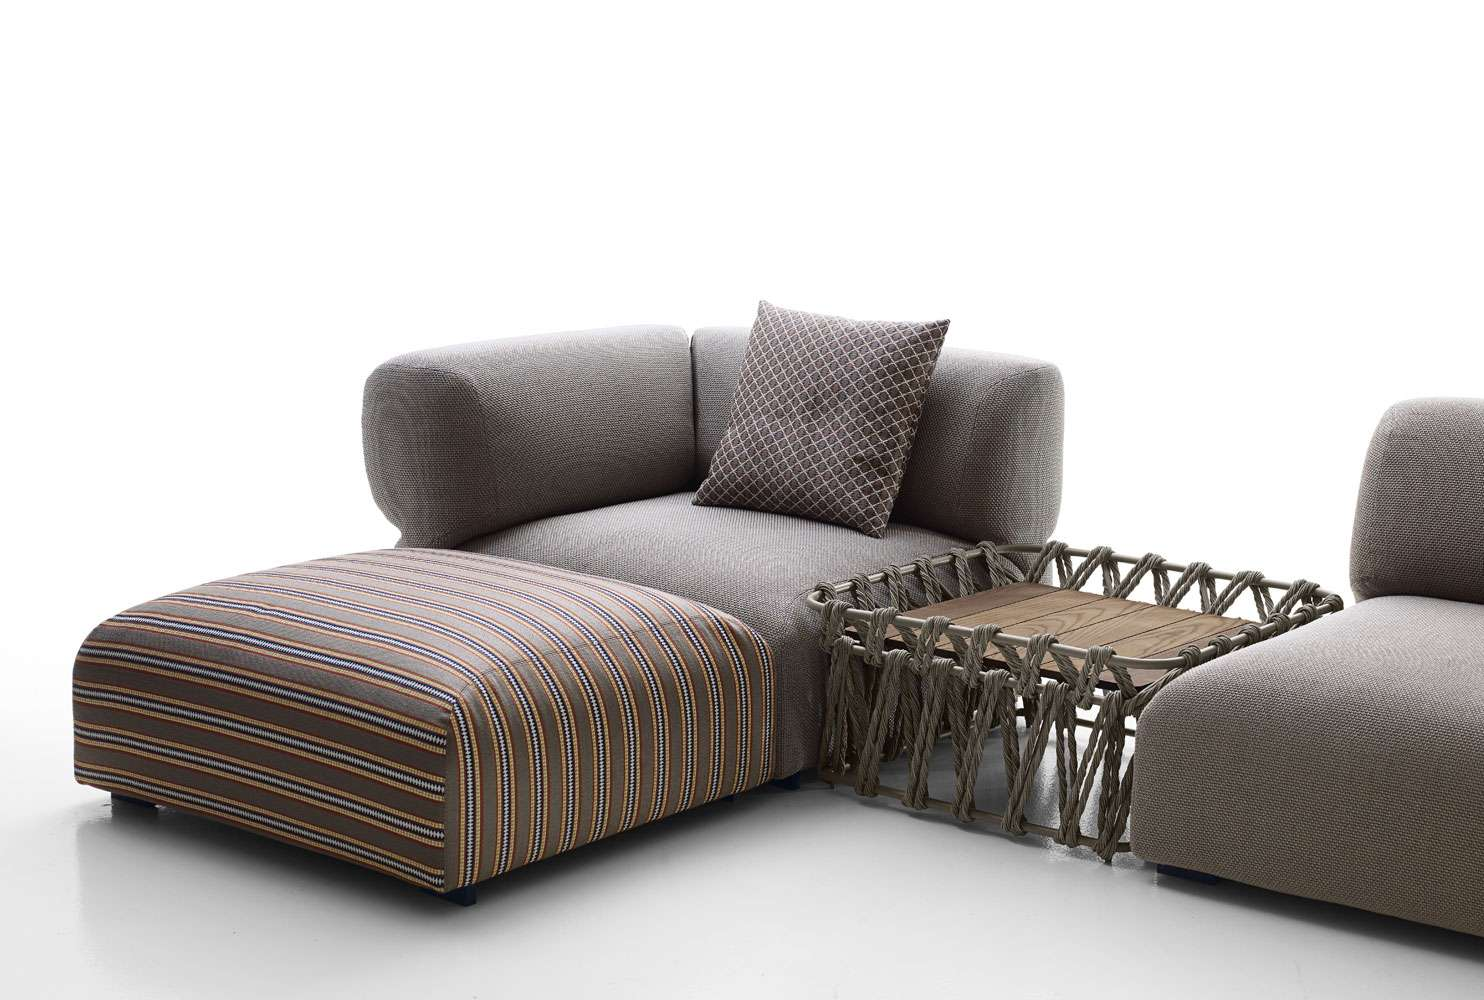 squarcina b b italia outdoor butterfly sofa squarcina. Black Bedroom Furniture Sets. Home Design Ideas